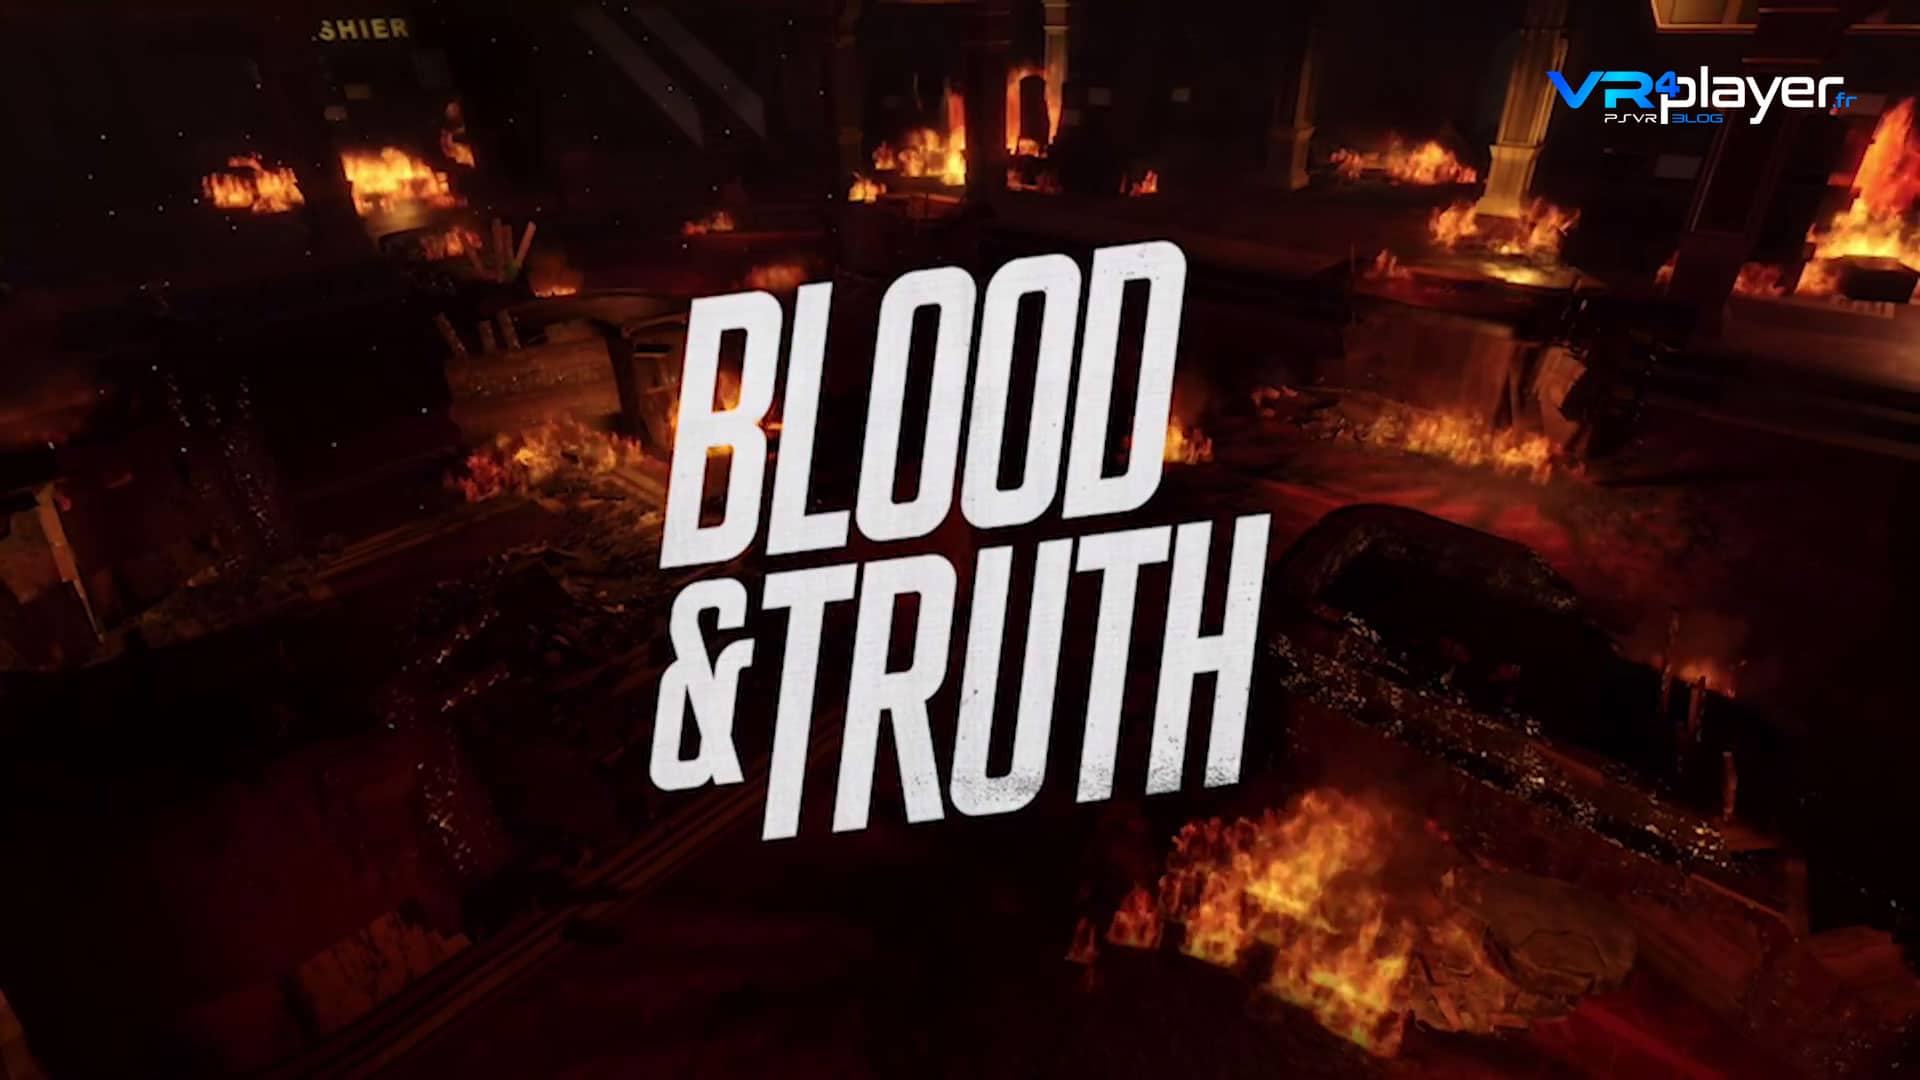 Blood and Truth VR4player